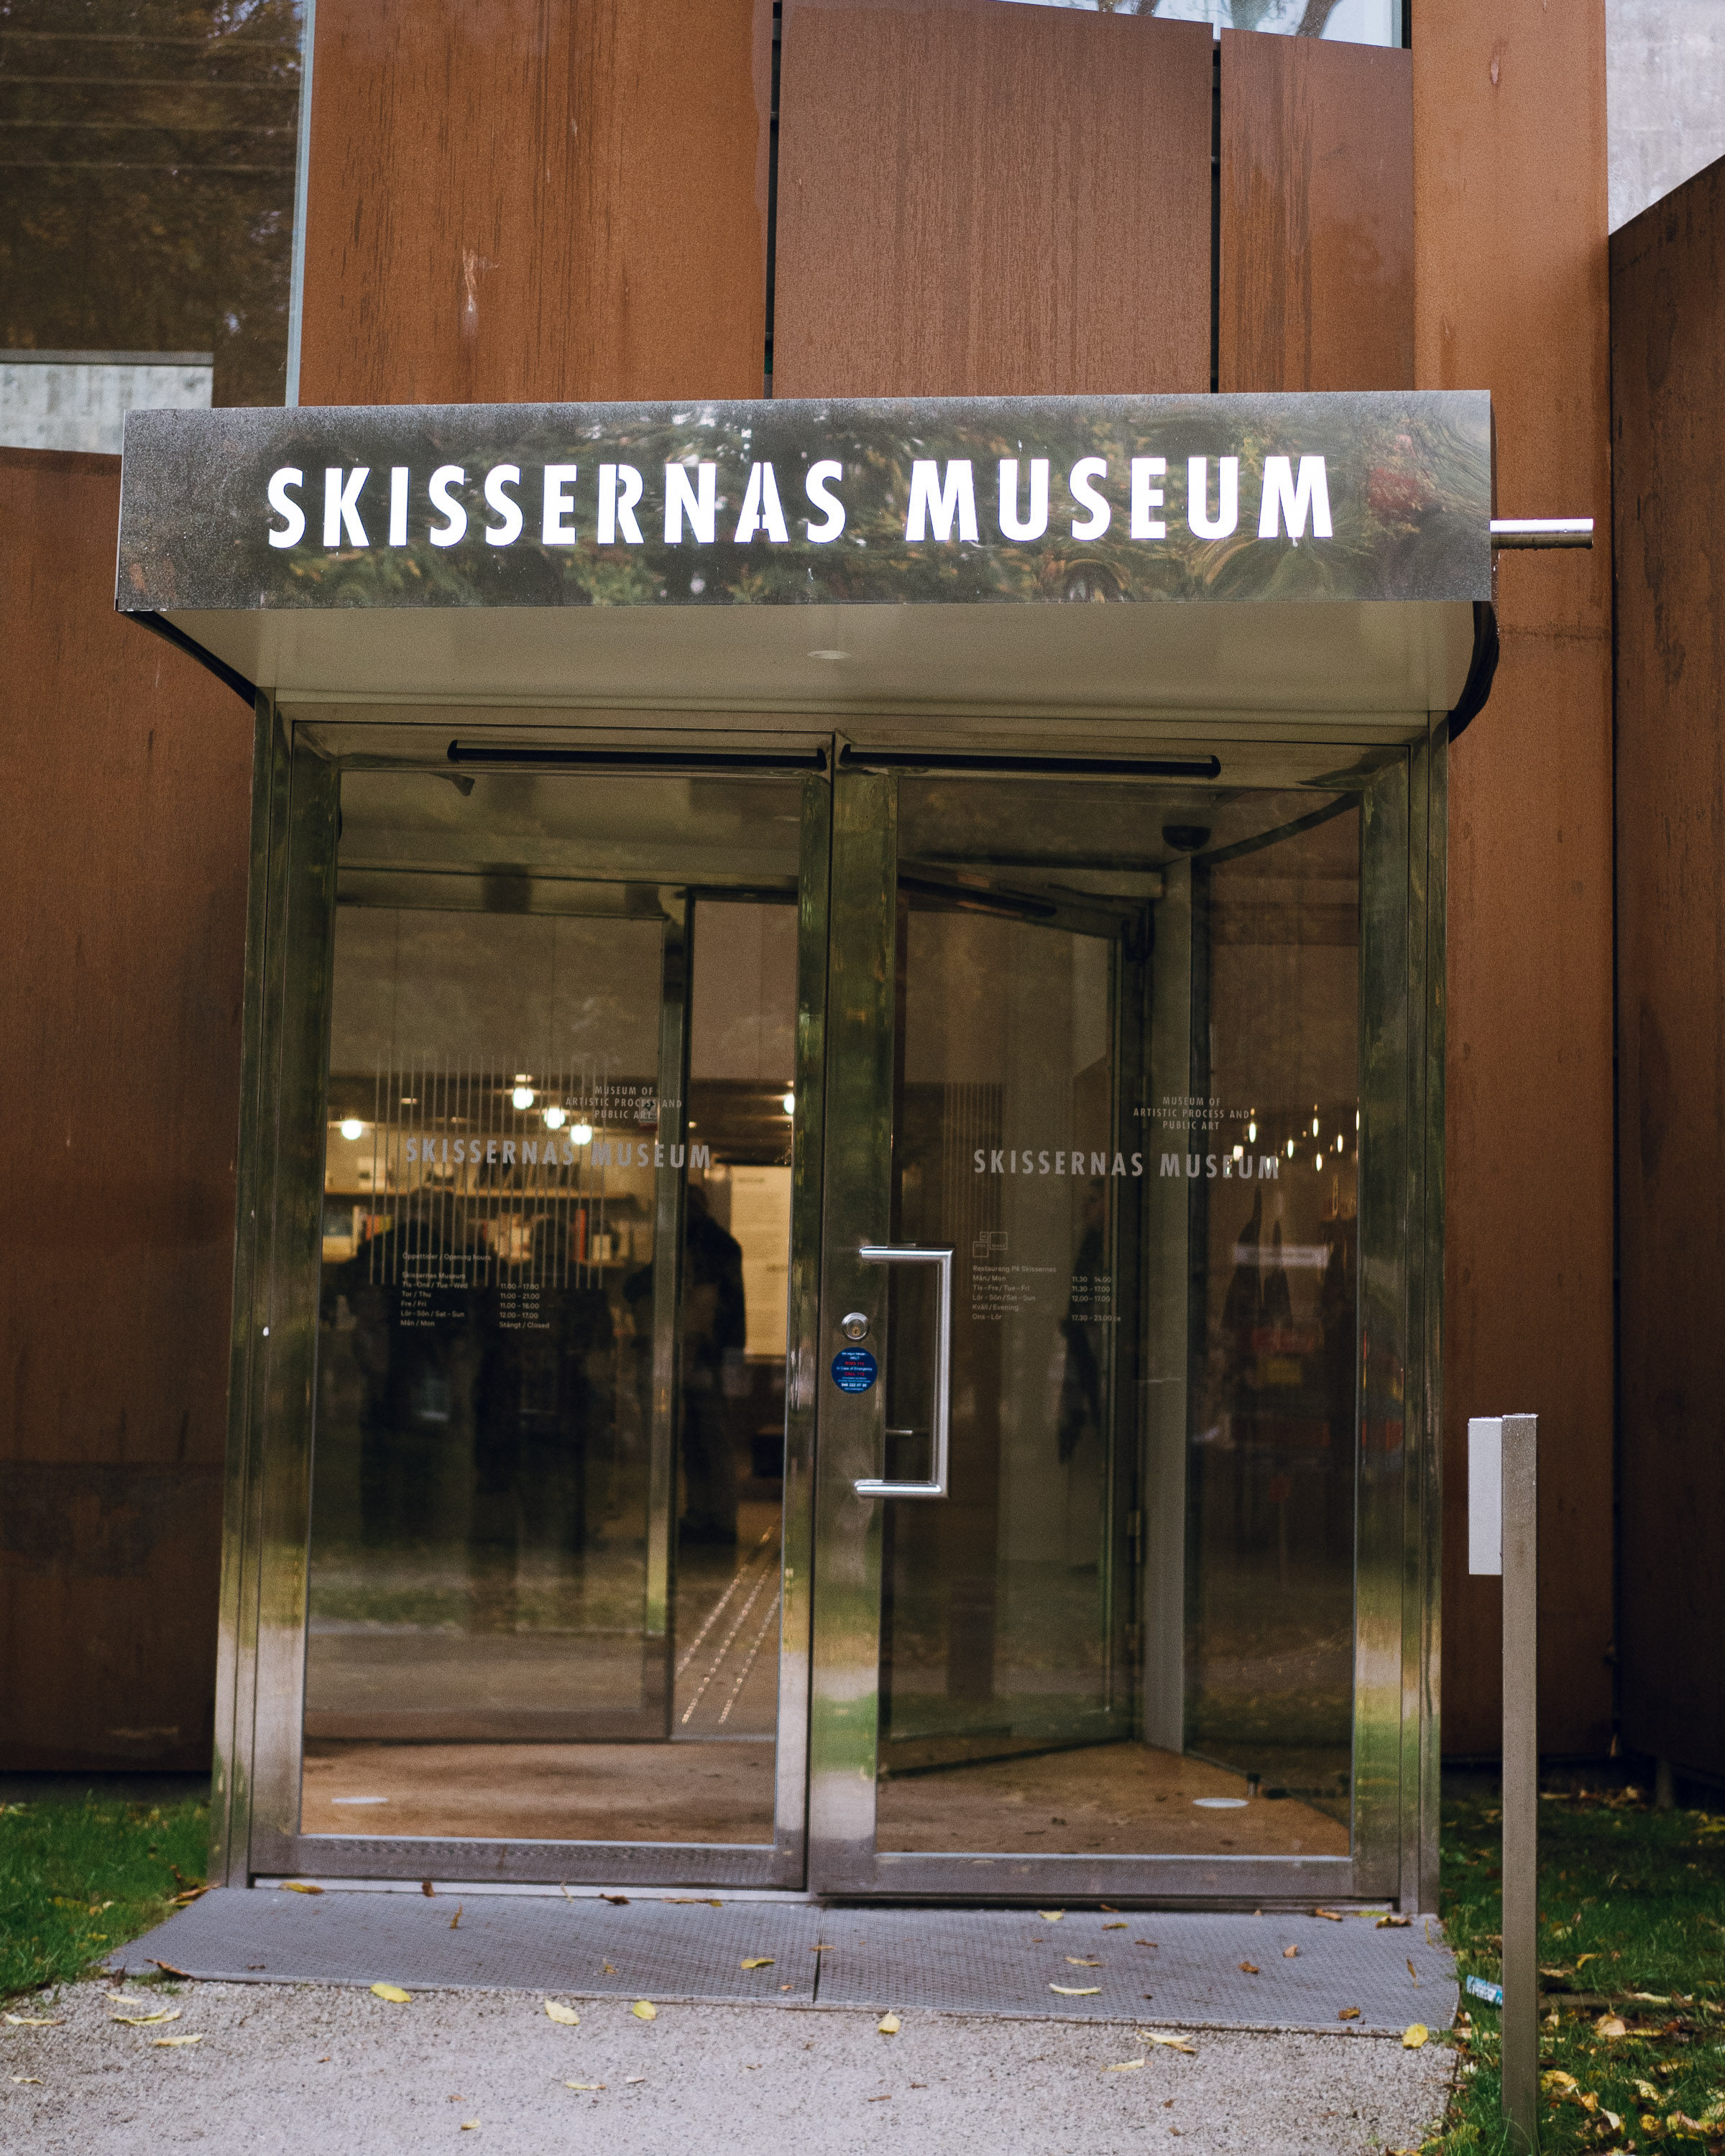 sweden part 2 lund and the skissernas museum